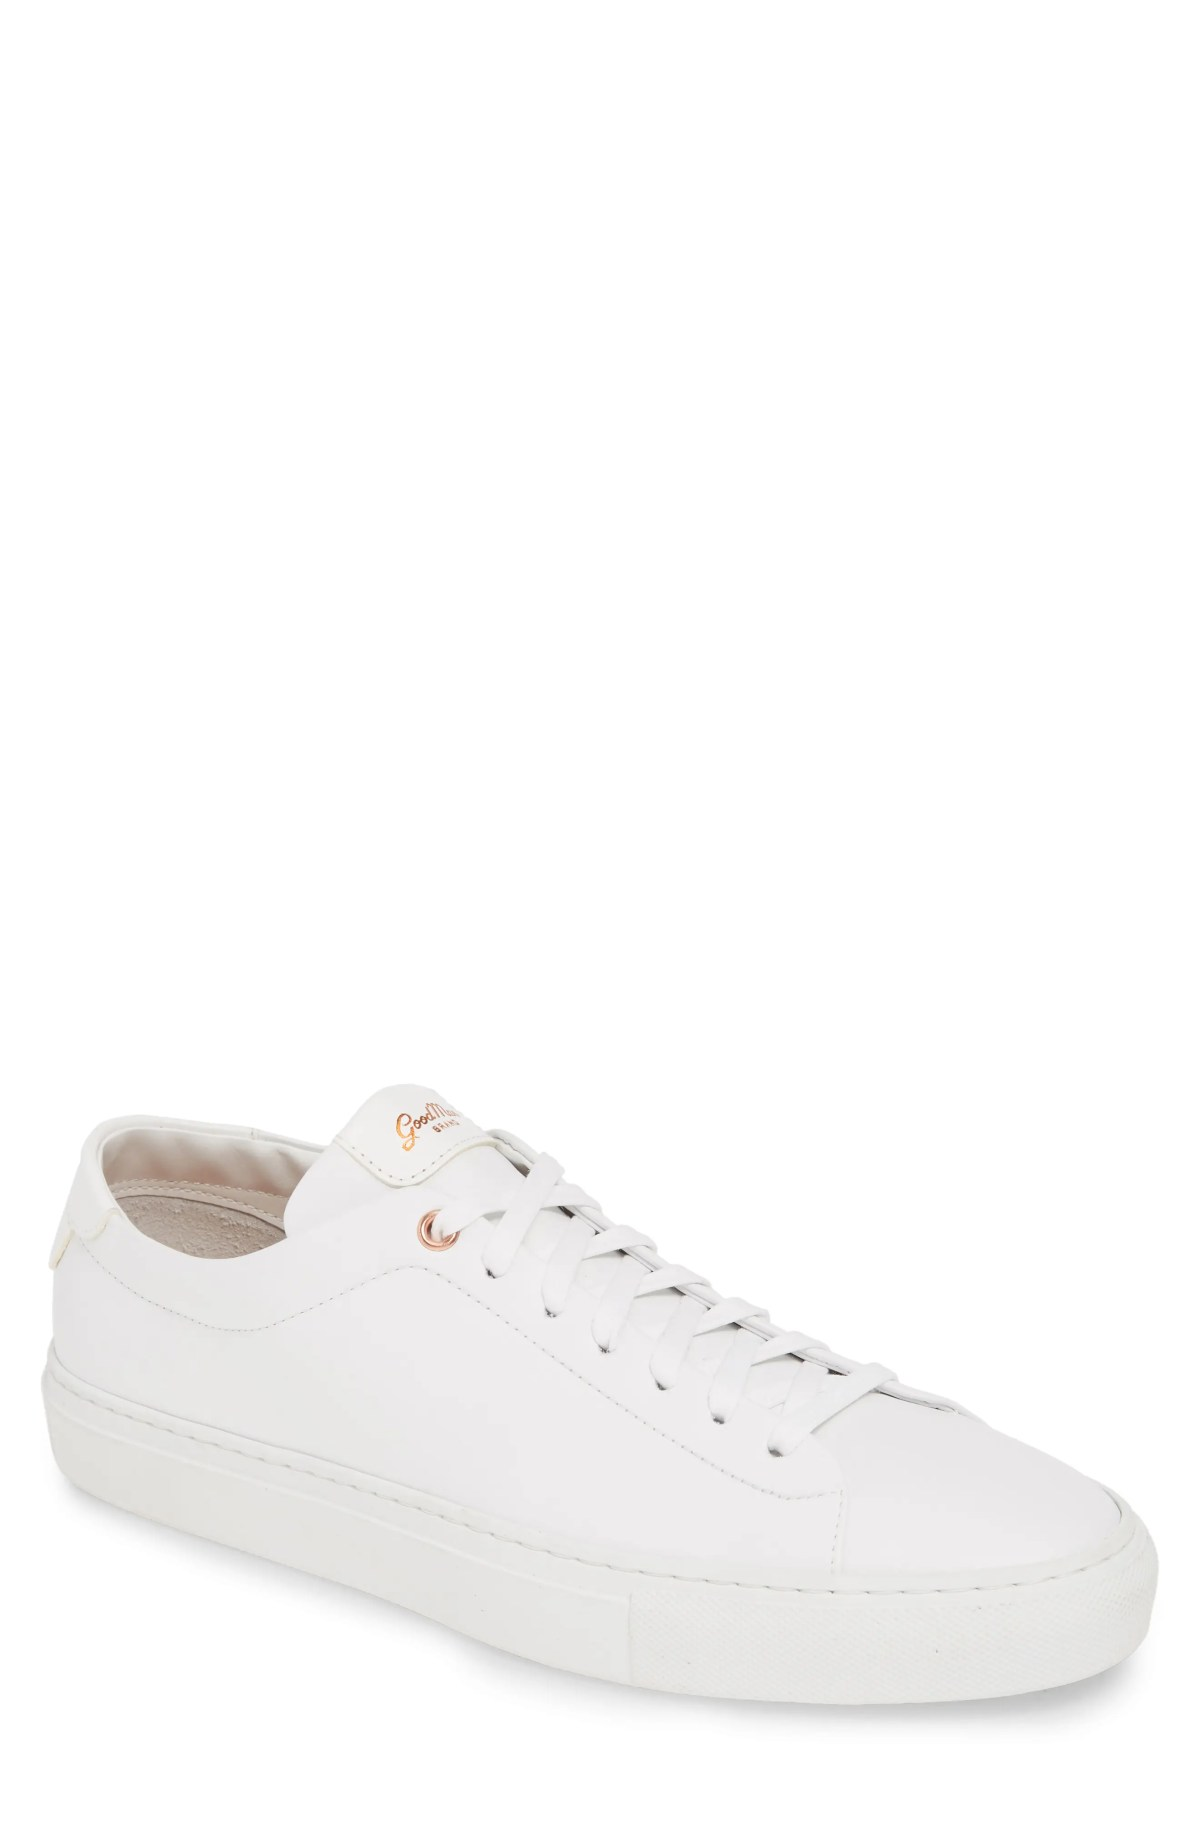 GOOD MAN BRAND Edge Sneaker, Main, color, WHITE LEATHER